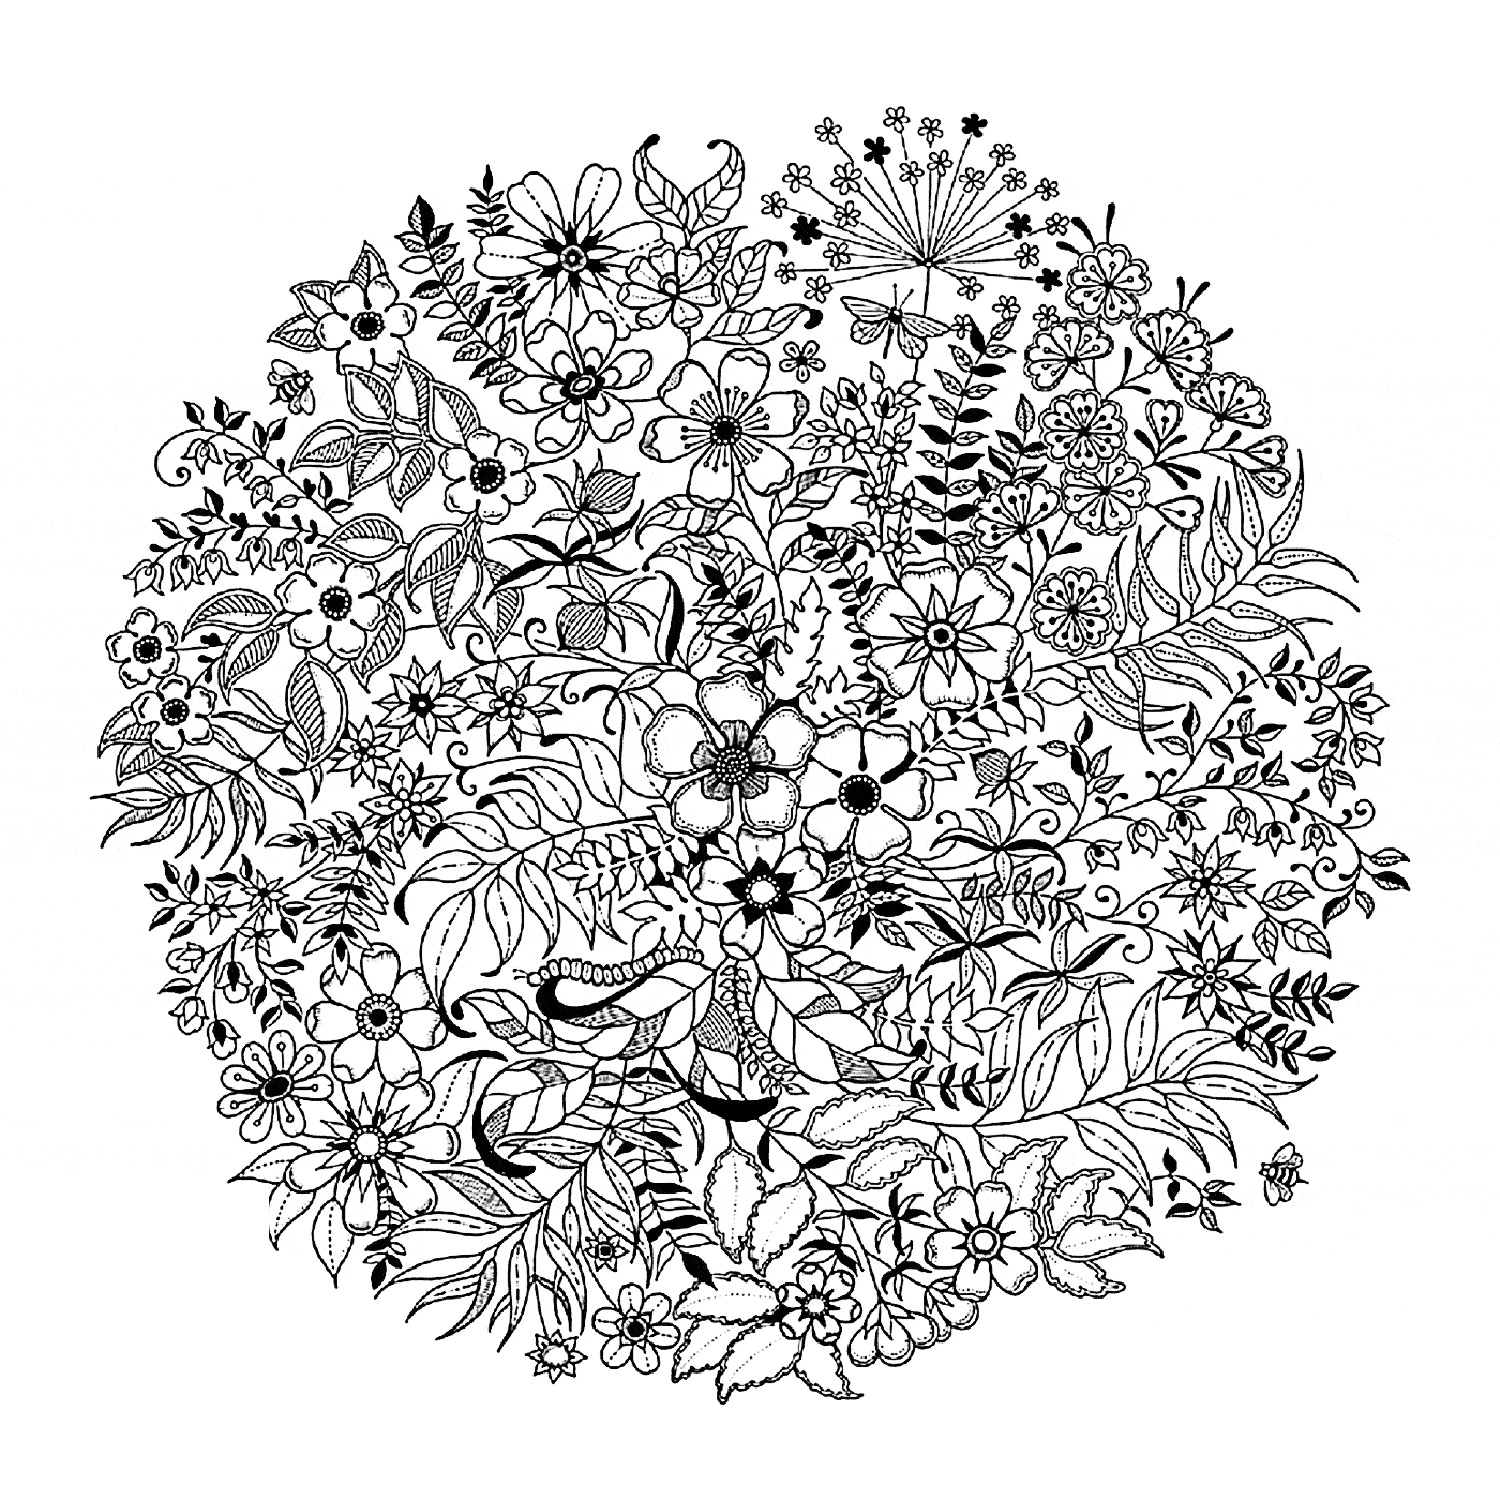 Flowers and vegetation - Coloring pages for adults : simple-mandala-flowered